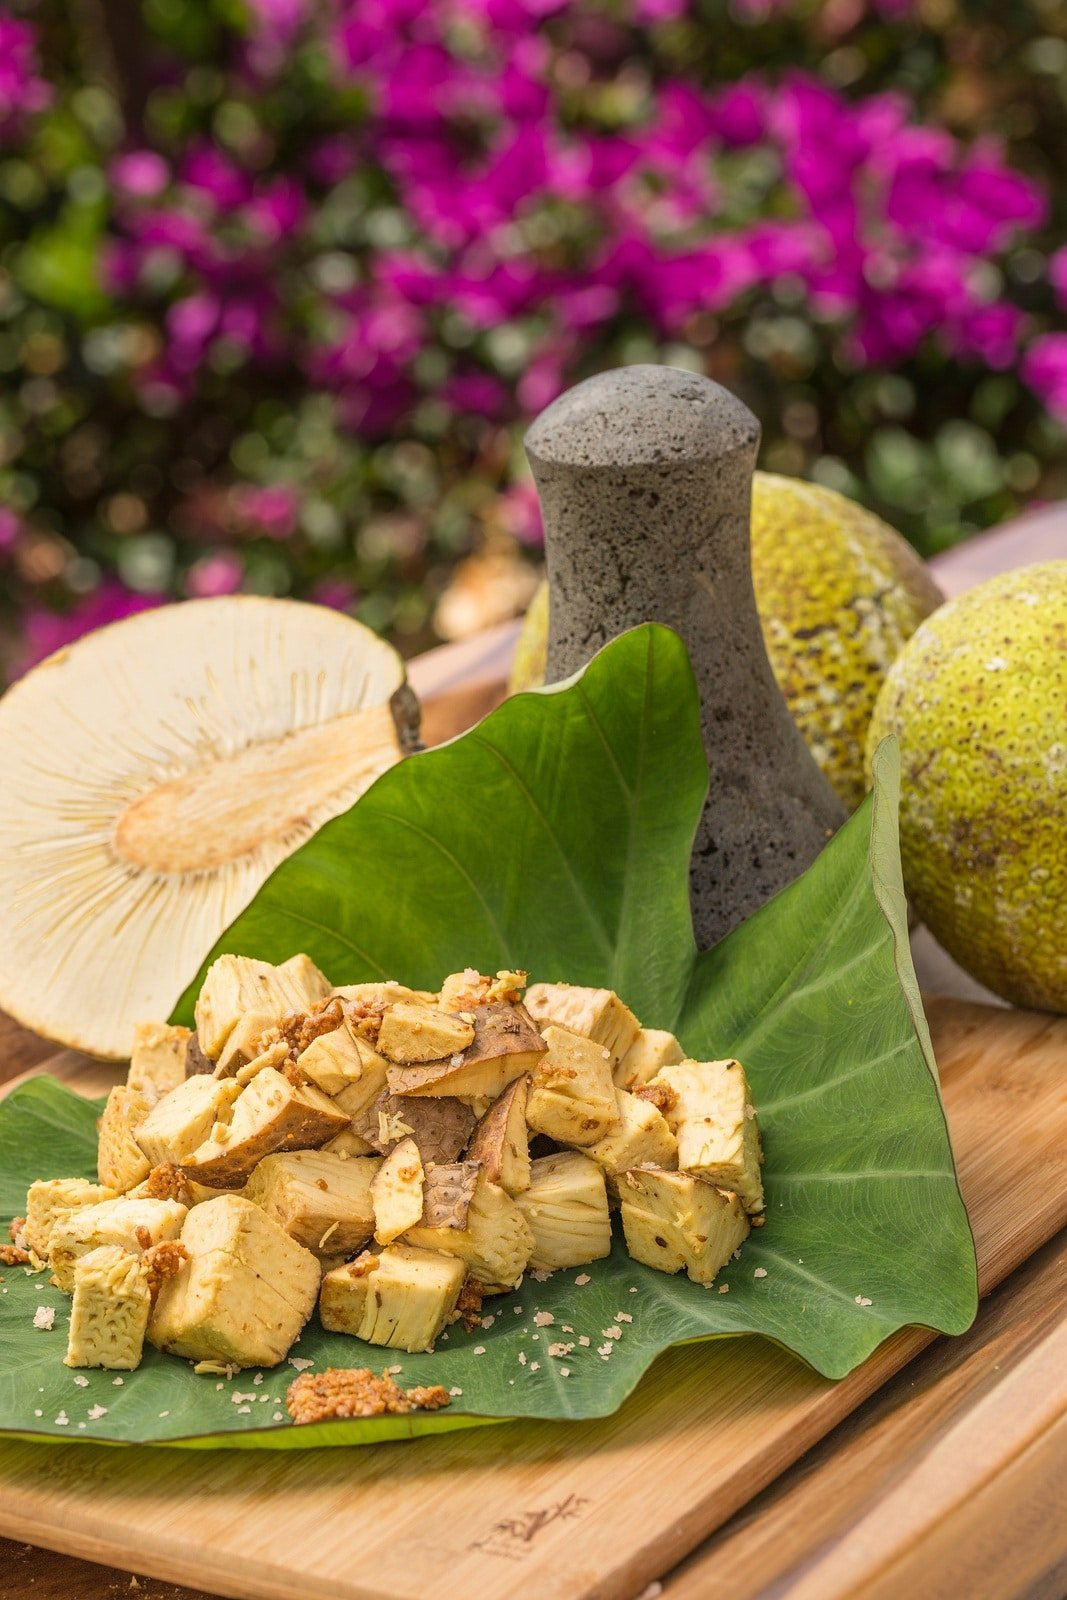 Breadfruit is incredibly popular in Asia but also in Hawaii where it is called ulu.